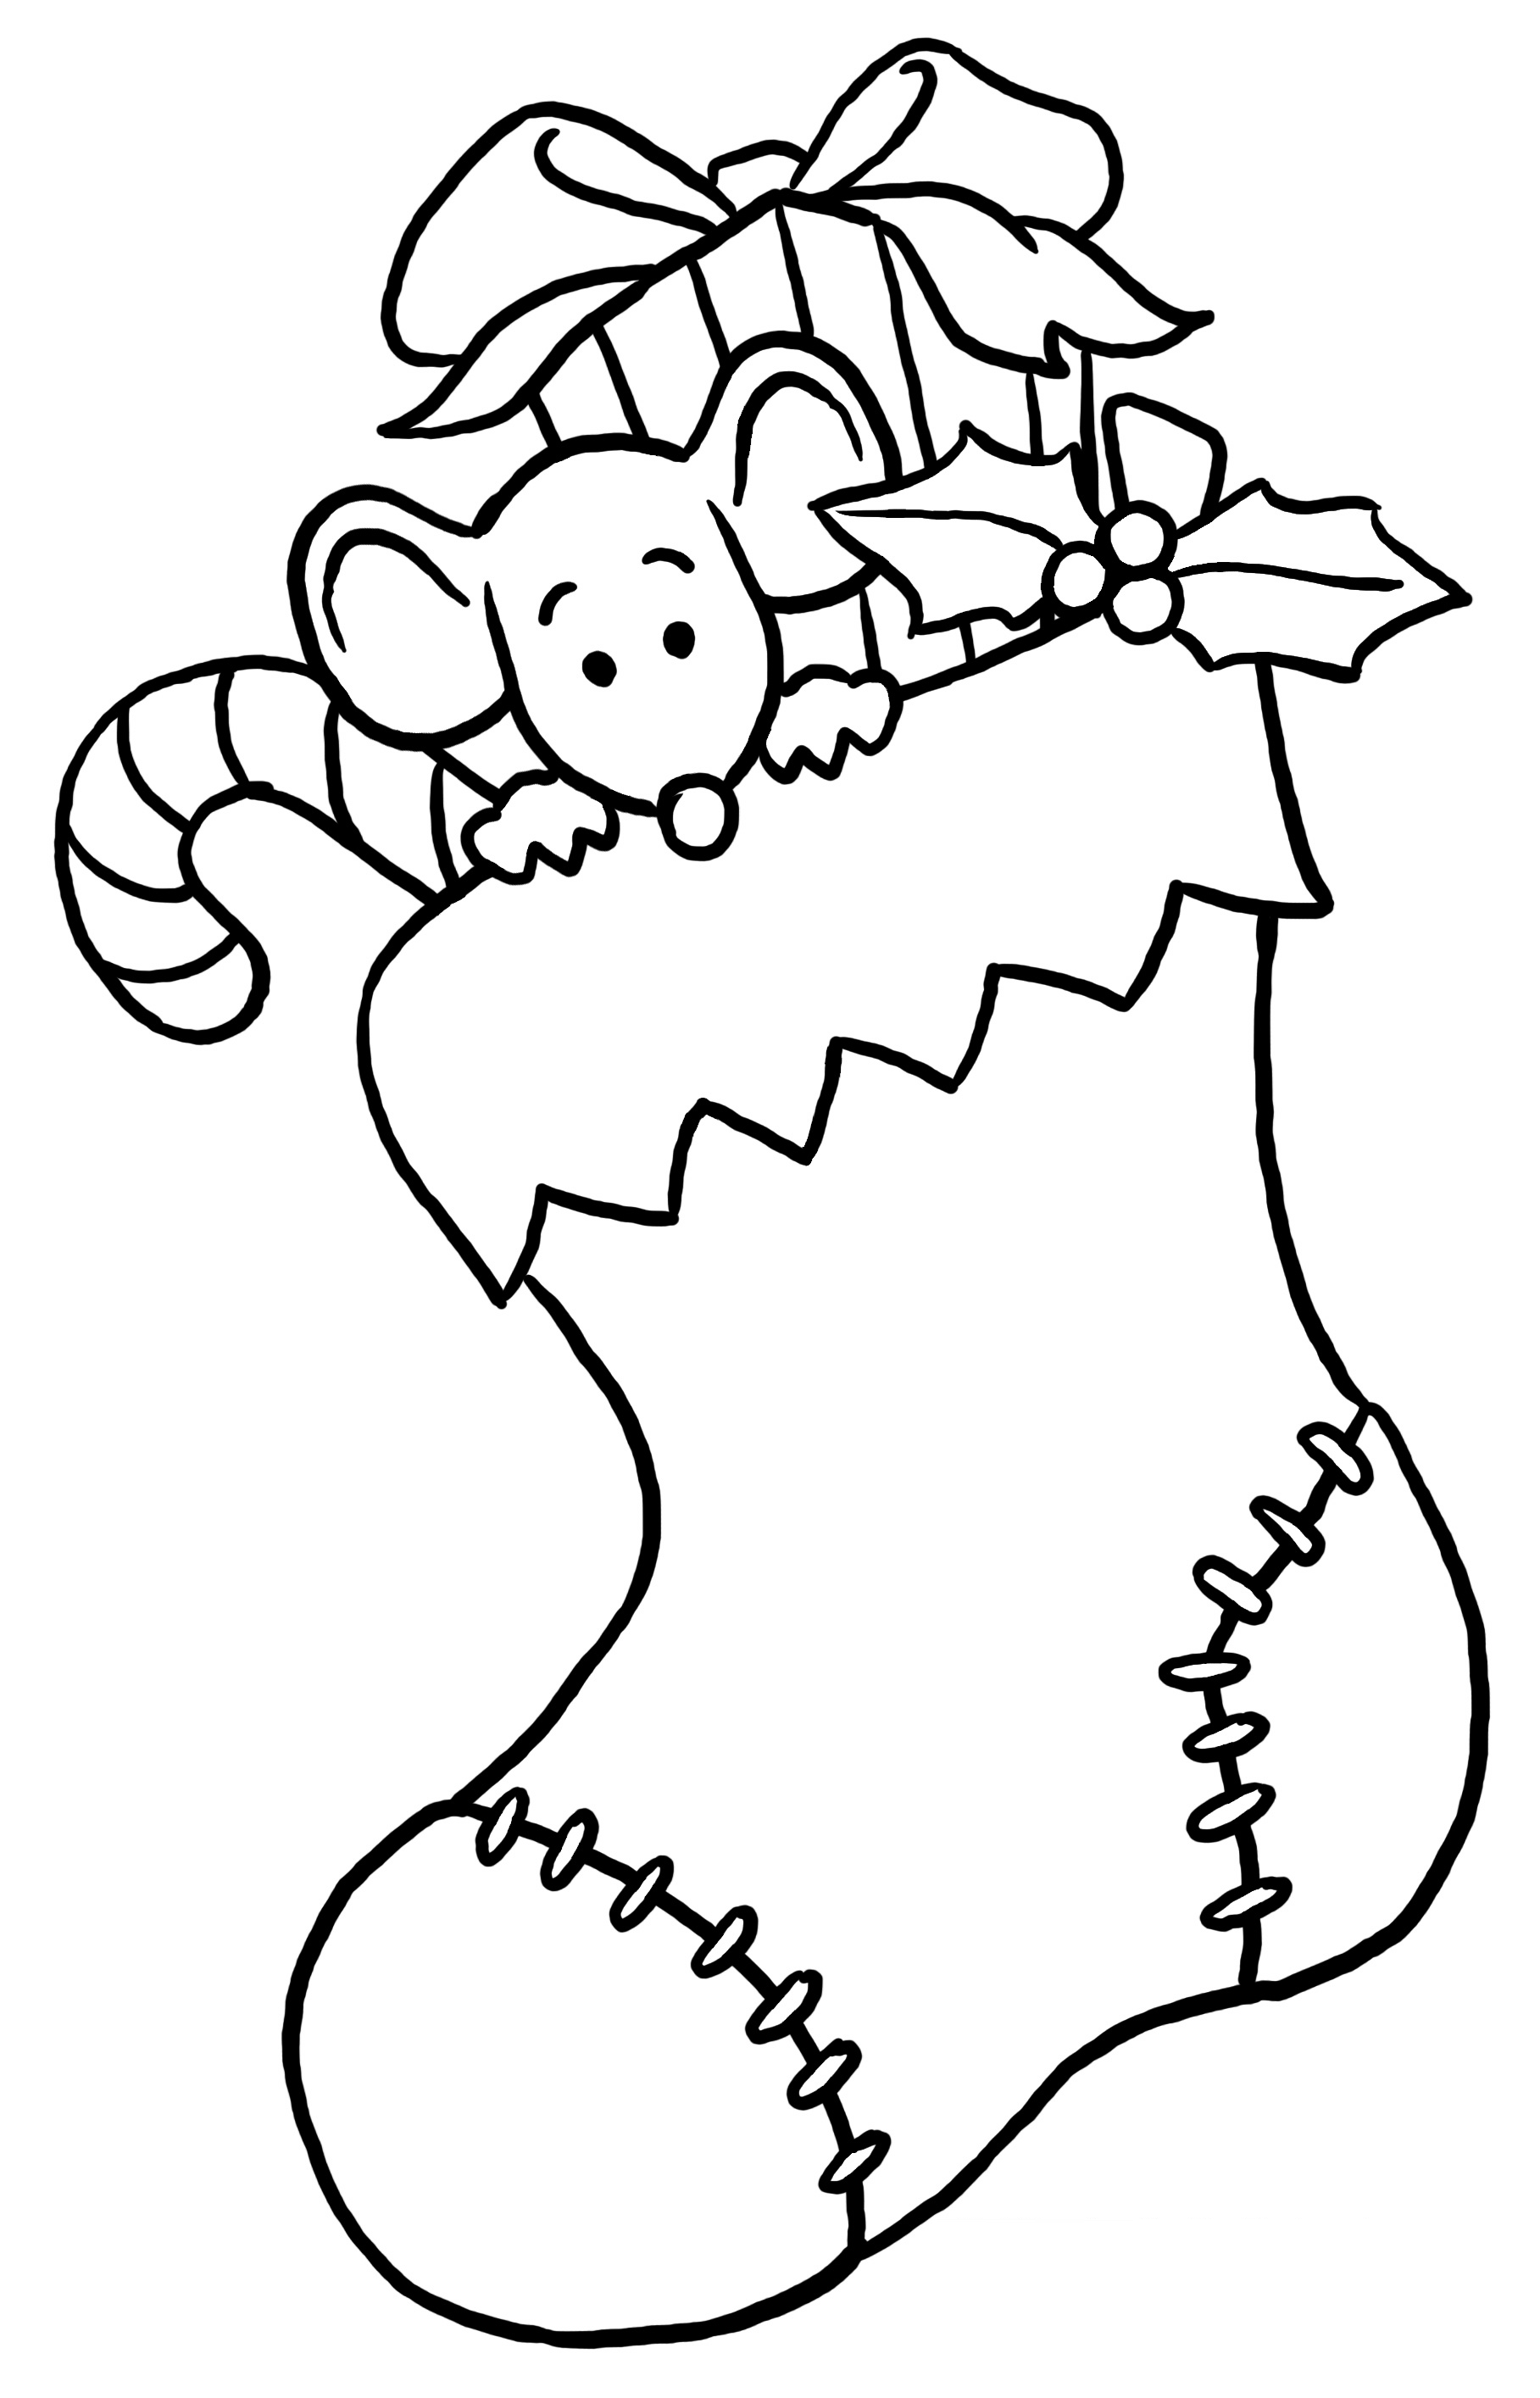 Free Coloring Pages Christmas To Print  Coloring Page